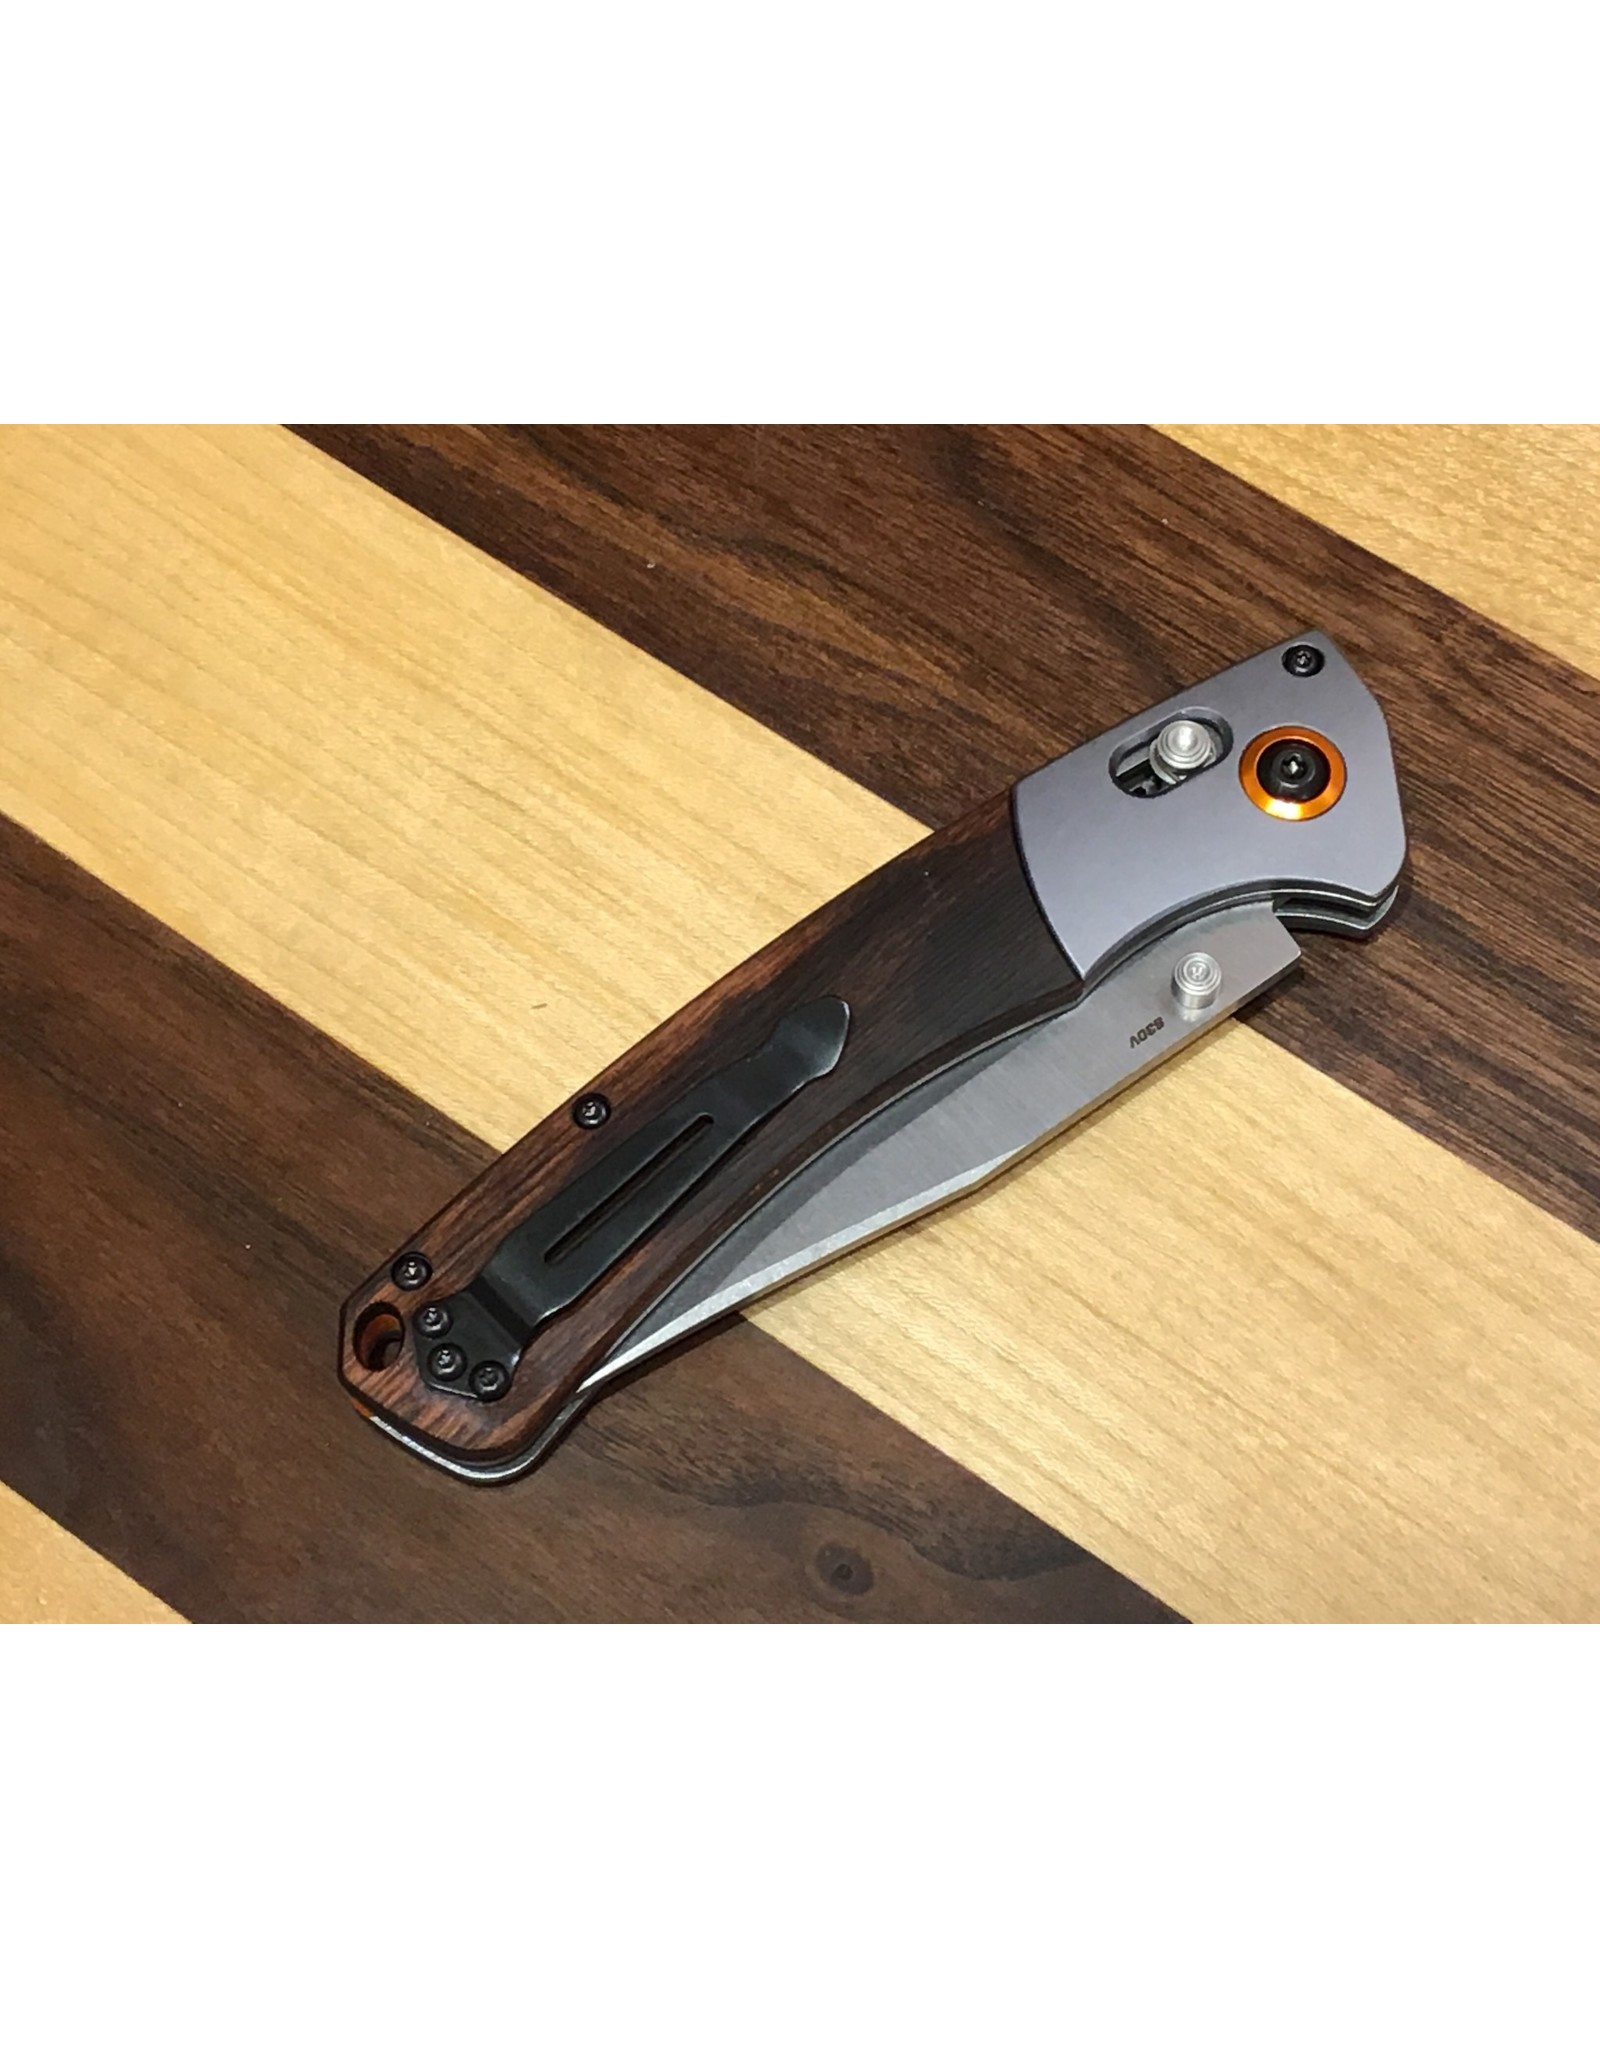 Benchmade Crooked River 15080-2